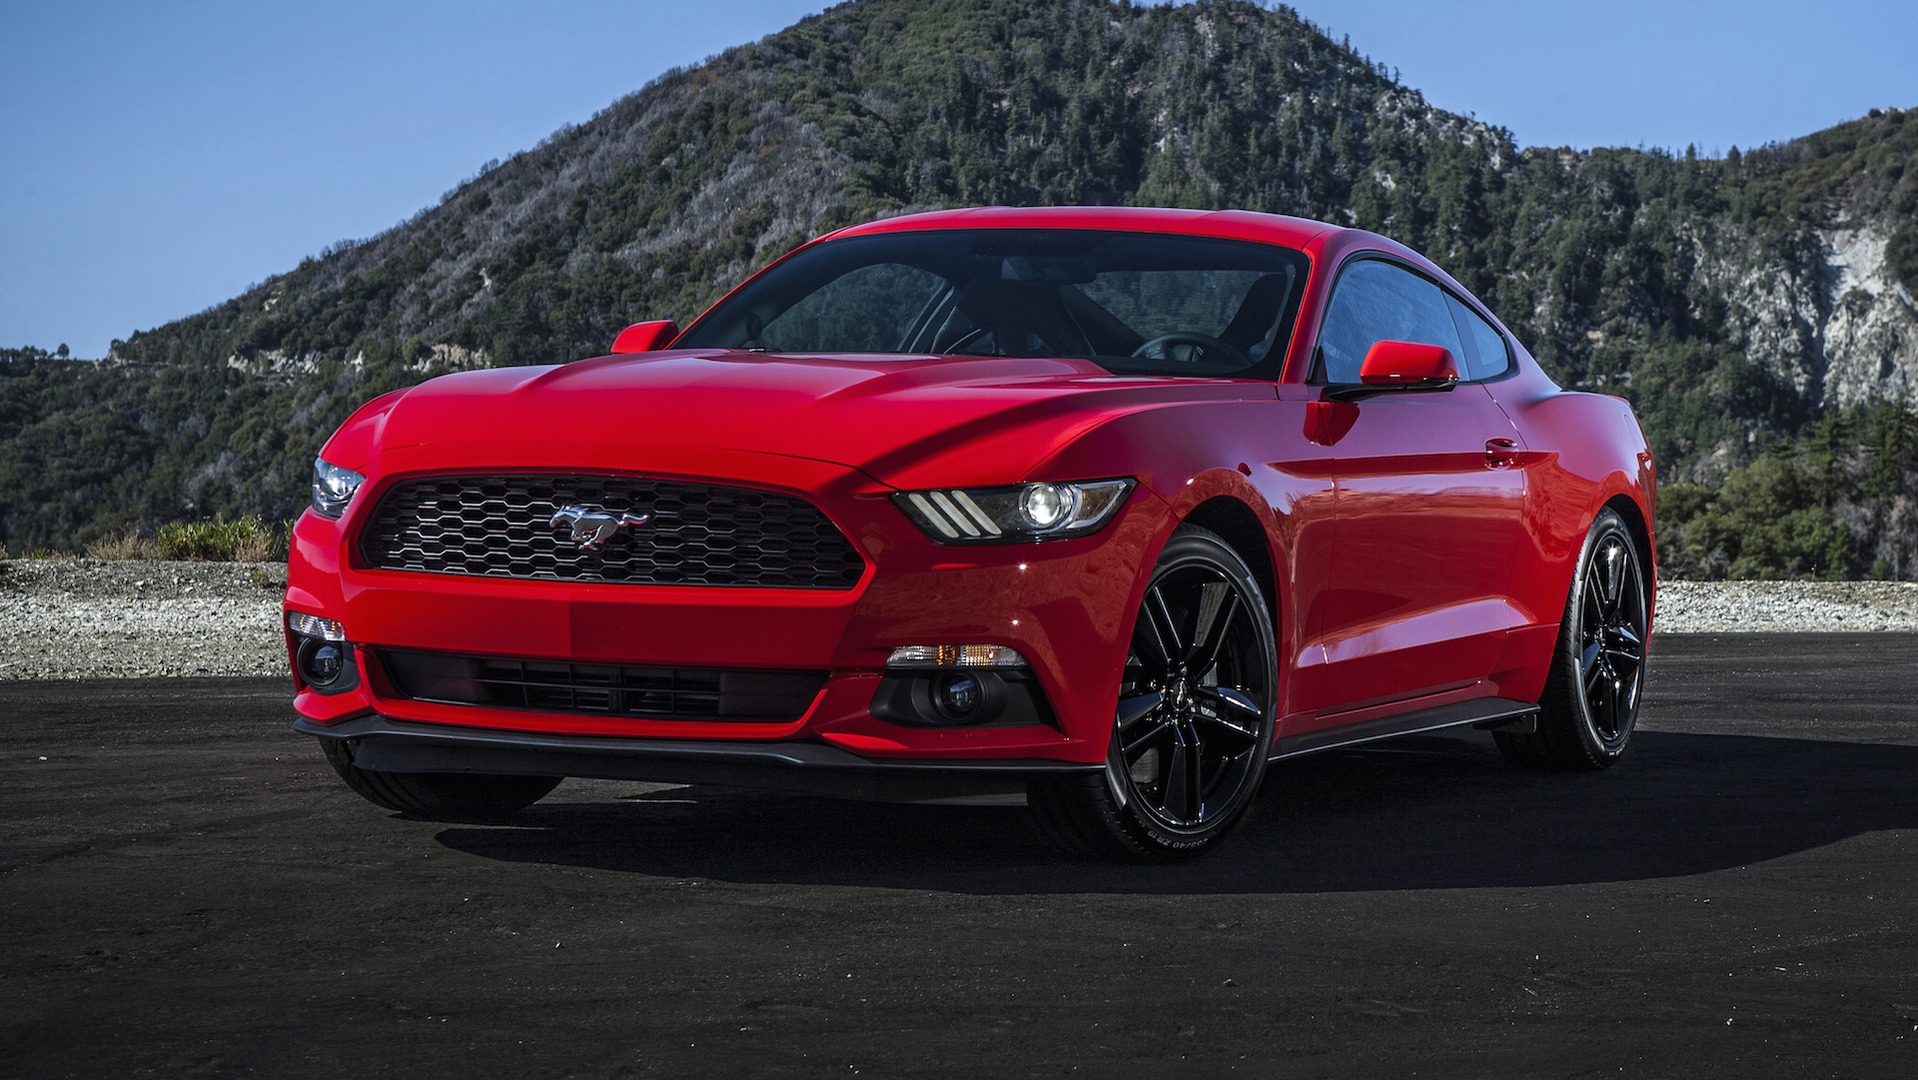 You can buy a 550 hp ecoboost mustang for just 33k